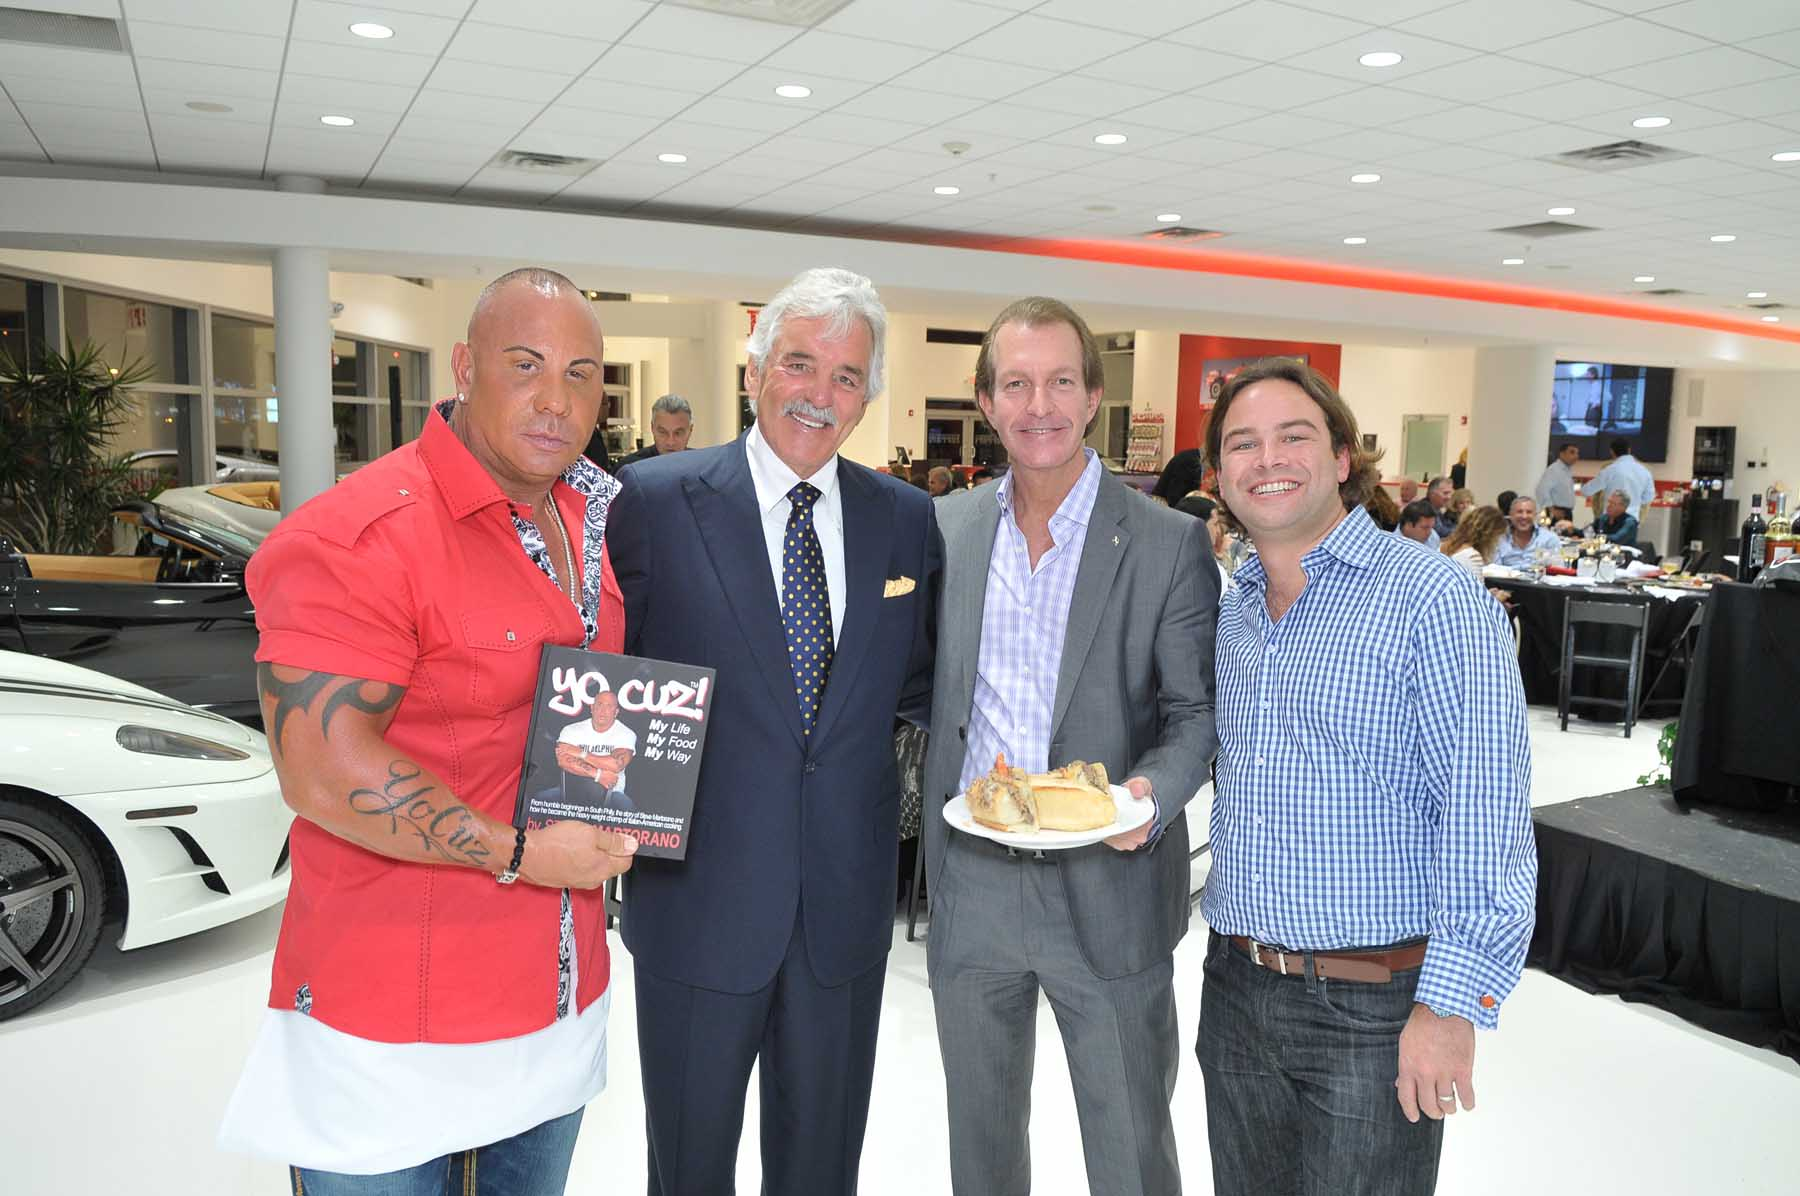 FERRARI-MASERATI OF FORT LAUDERDALE HOSTED AN EXCLUSIVE DINNER PARTY WITH ACTOR DENNIS FARINA AND CELEBRITY COOK STEVE MARTORANO